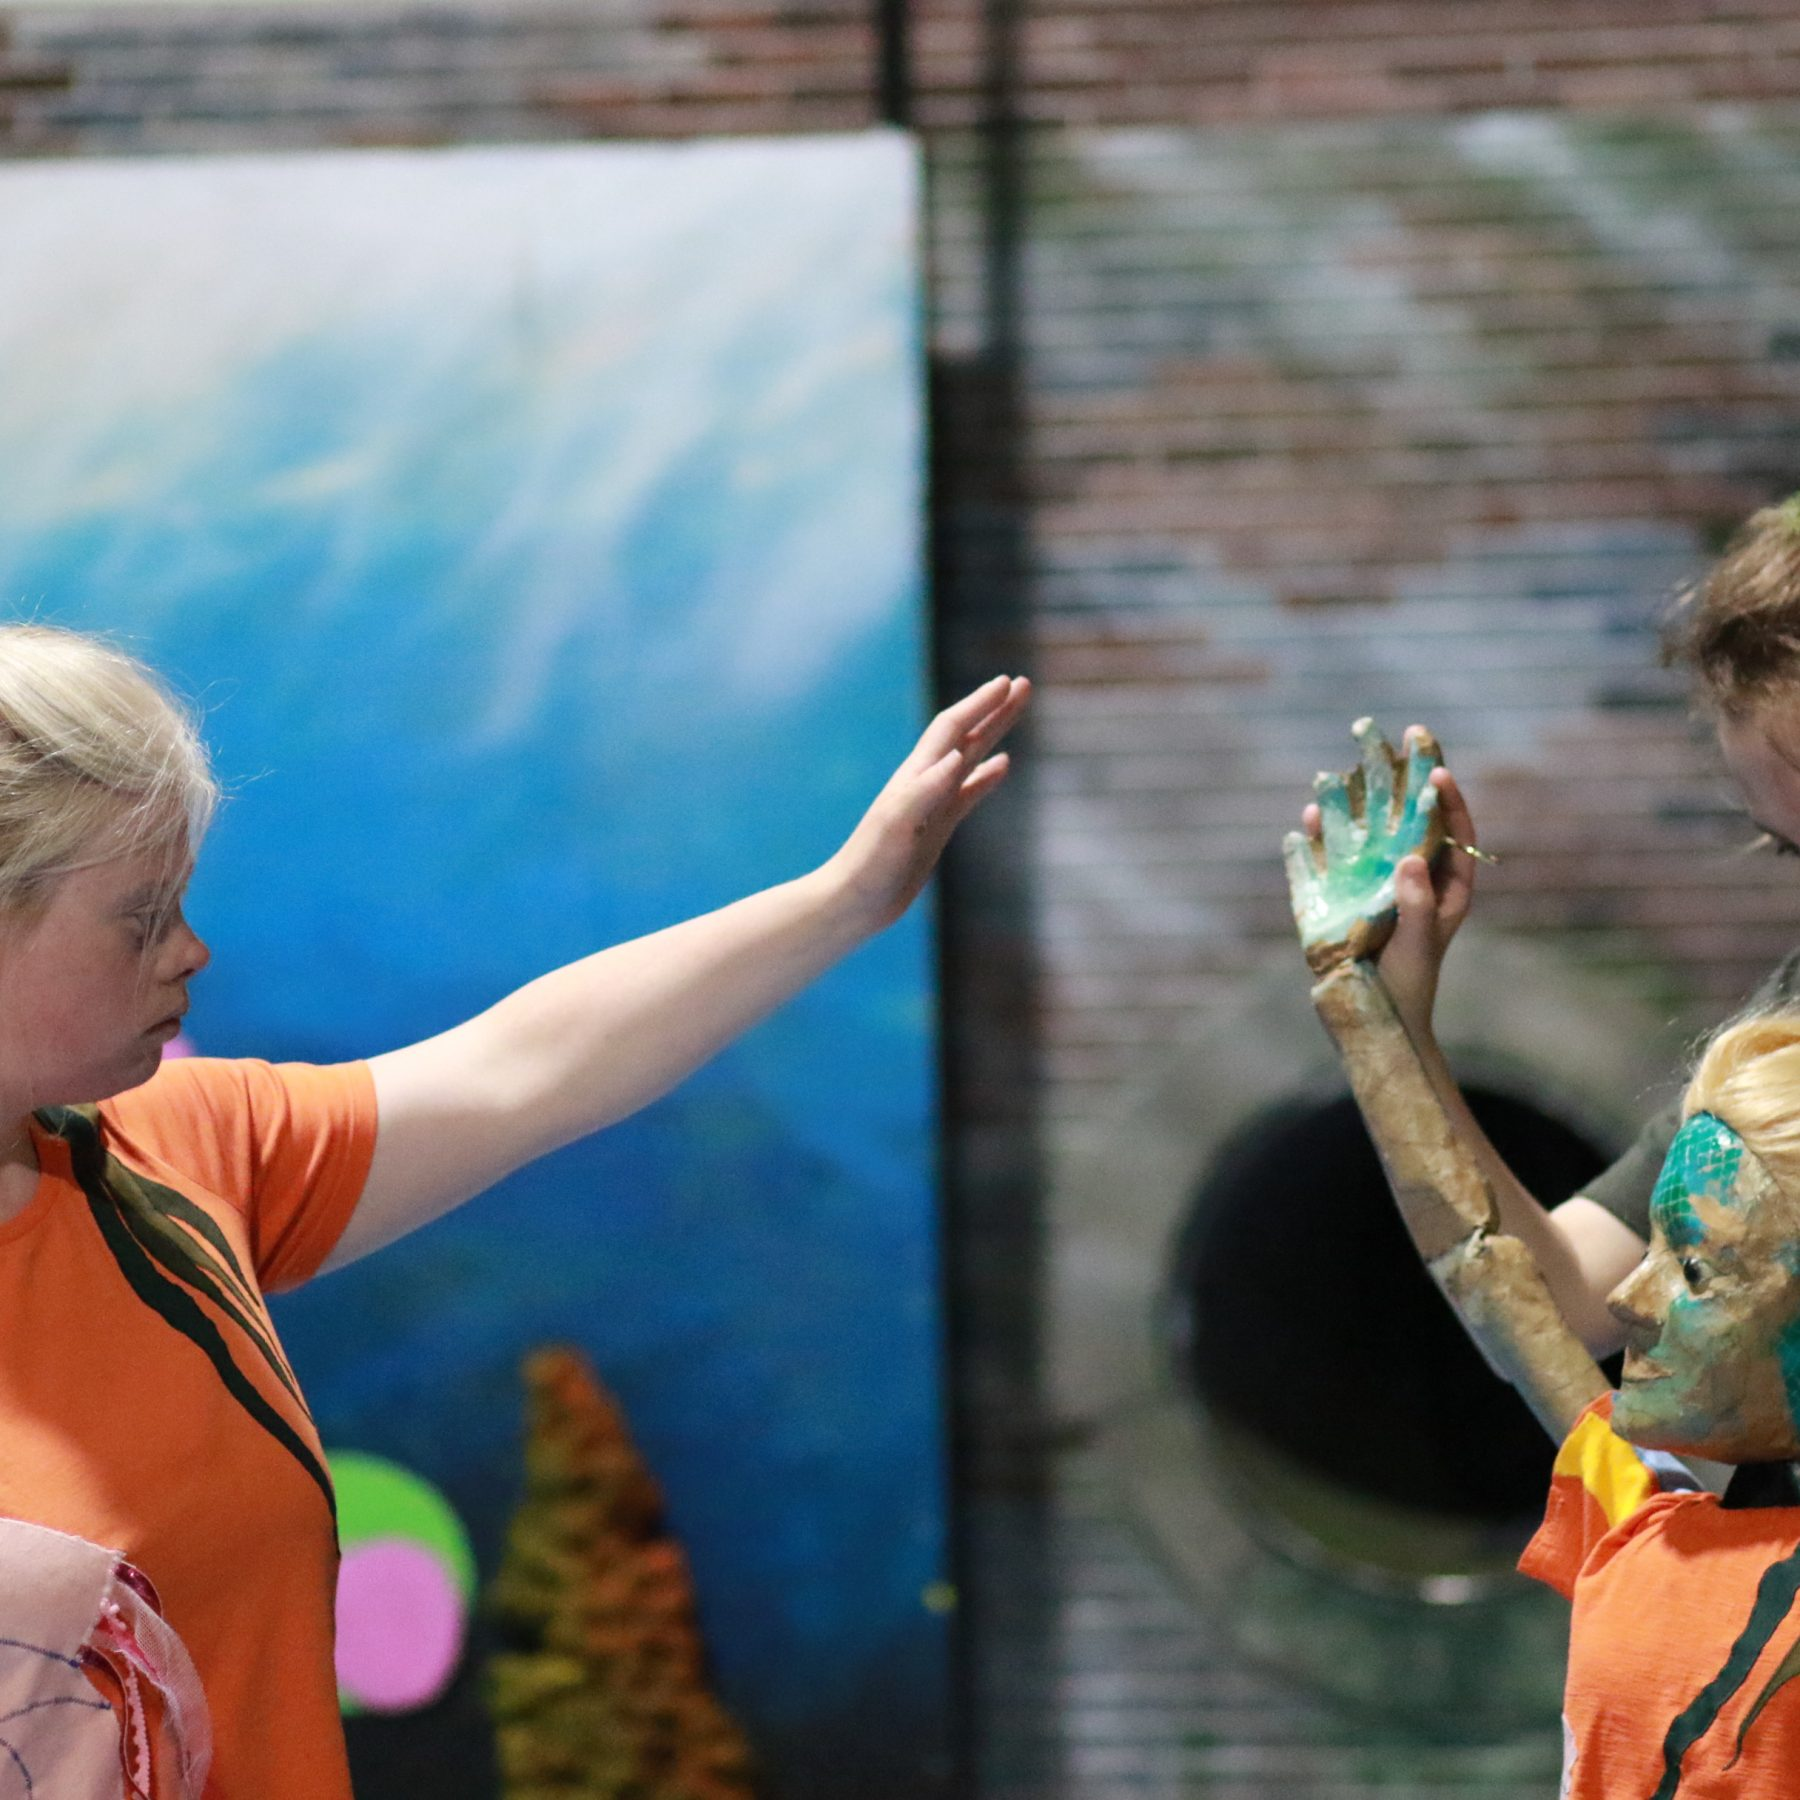 Splash!, by Extraordinary Bodies - Flo, a young learning disabled girl (played by Helen Cherry) reaches her arm up to reach a puppet version of herself, who is mirroring her.